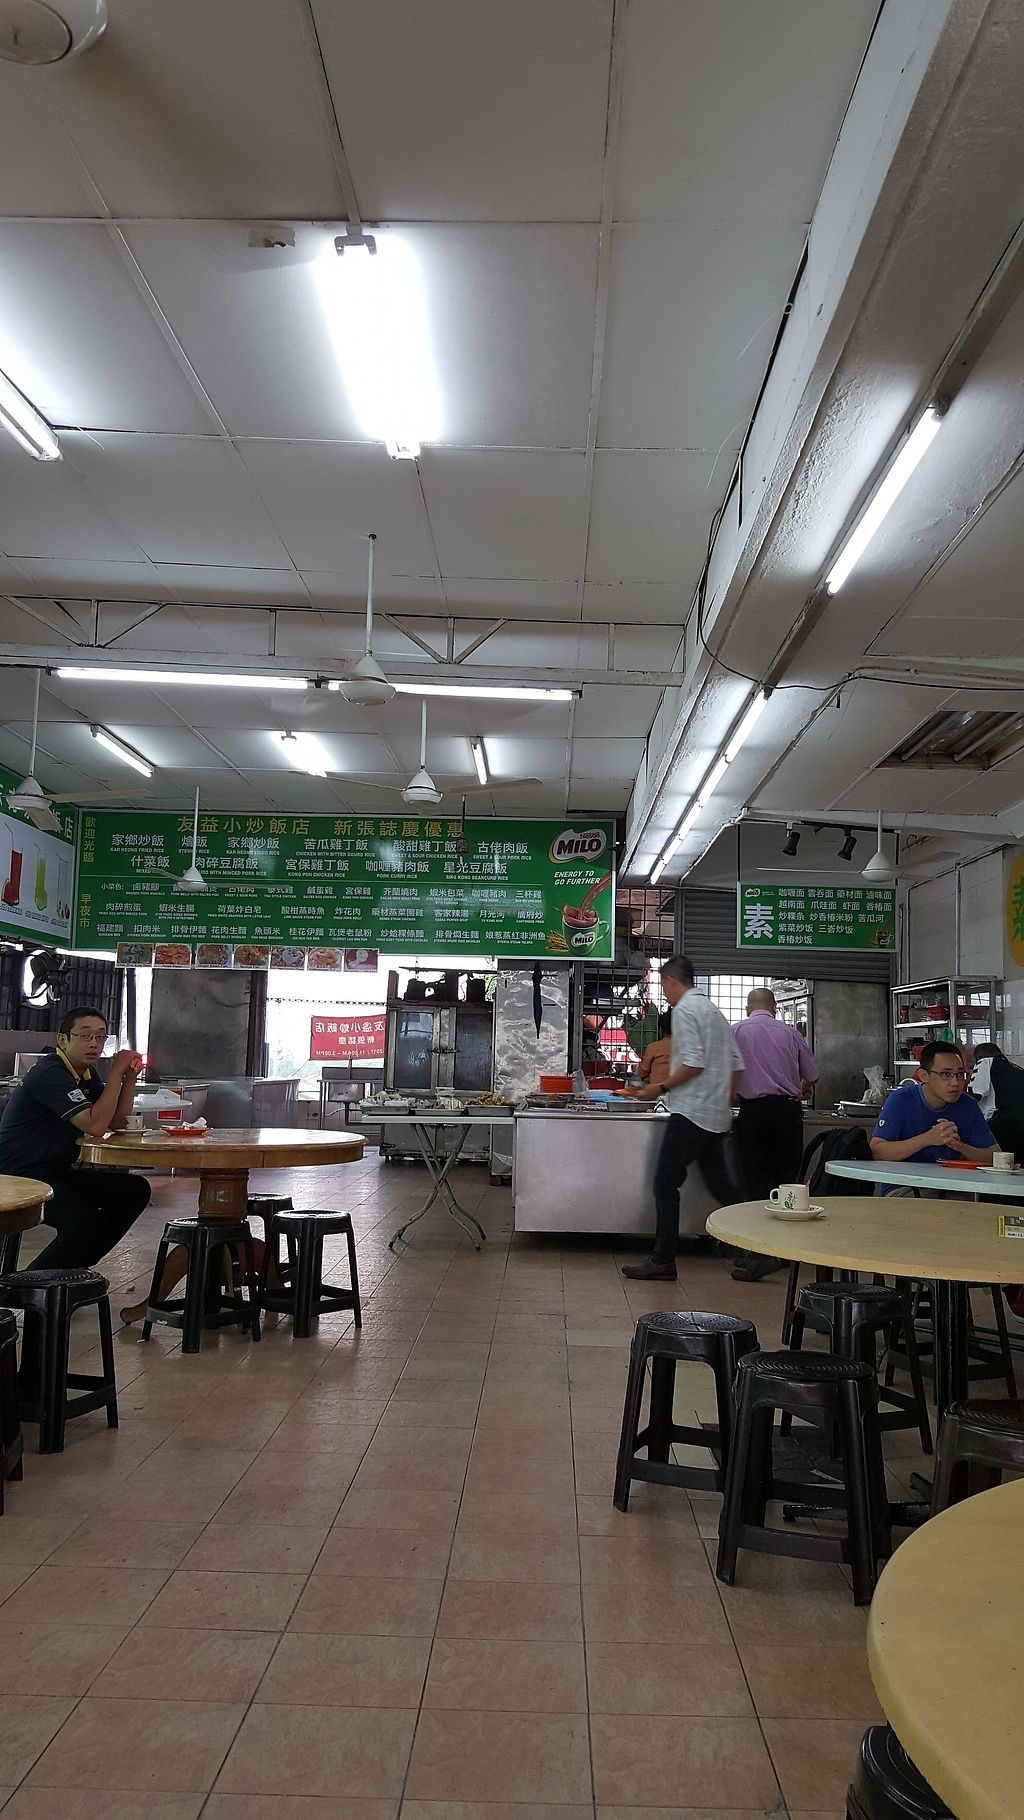 """Photo of Tong Fong - Vegetarian Stall  by <a href=""""/members/profile/louisvoon121"""">louisvoon121</a> <br/>Tong Fong Vegetarian Stall <br/> July 25, 2017  - <a href='/contact/abuse/image/88301/284503'>Report</a>"""